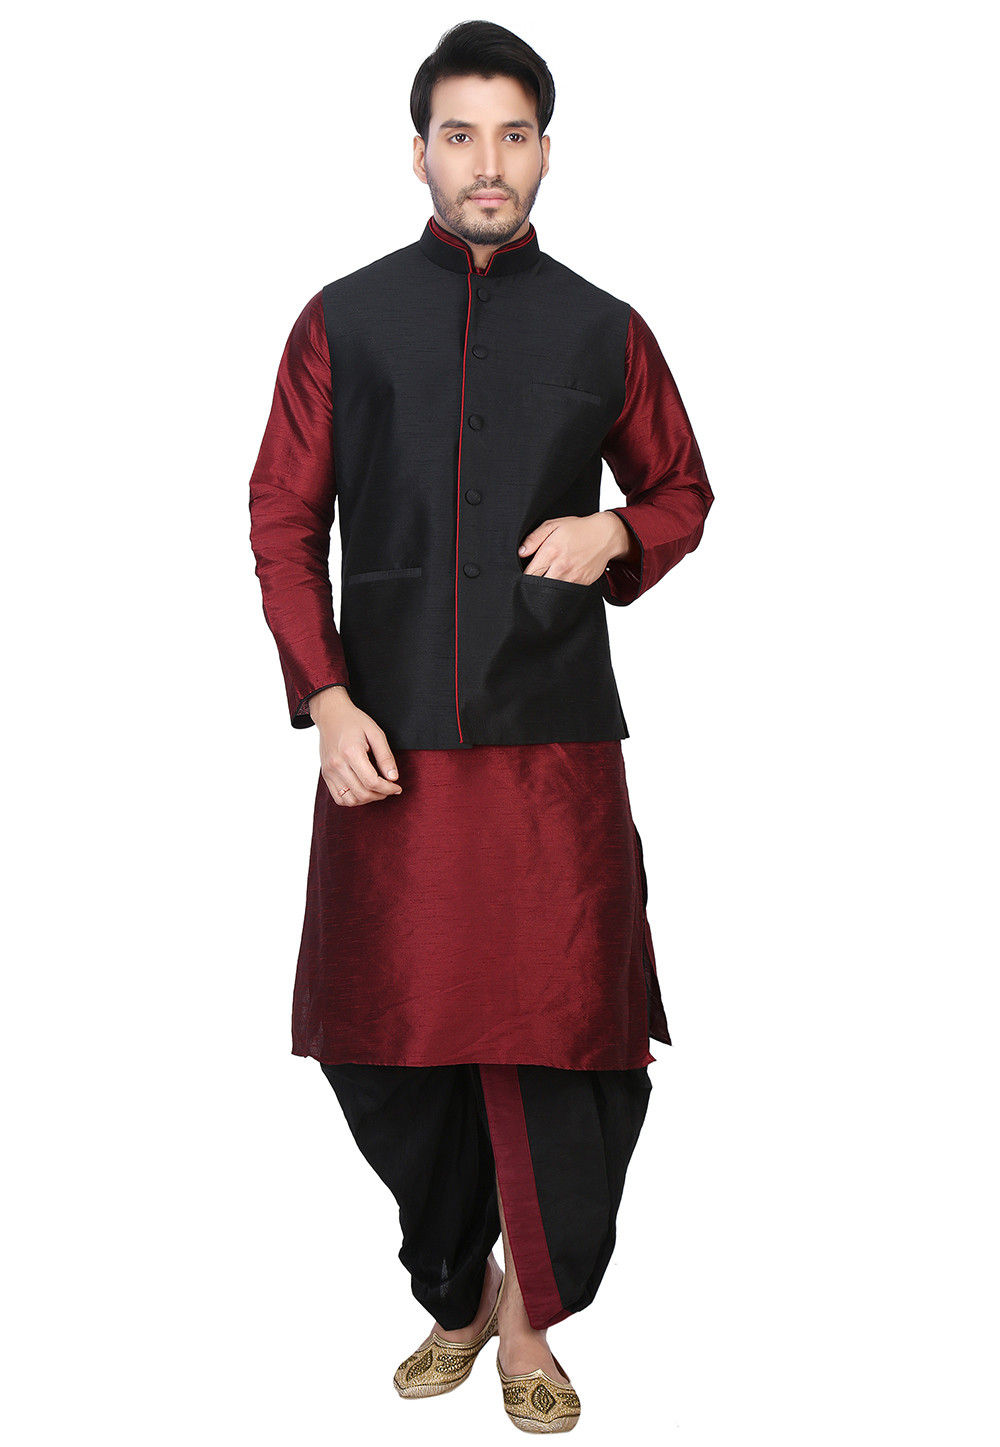 Plain Dupion Silk Dhoti Kurta with Jacket in Maroon and Black